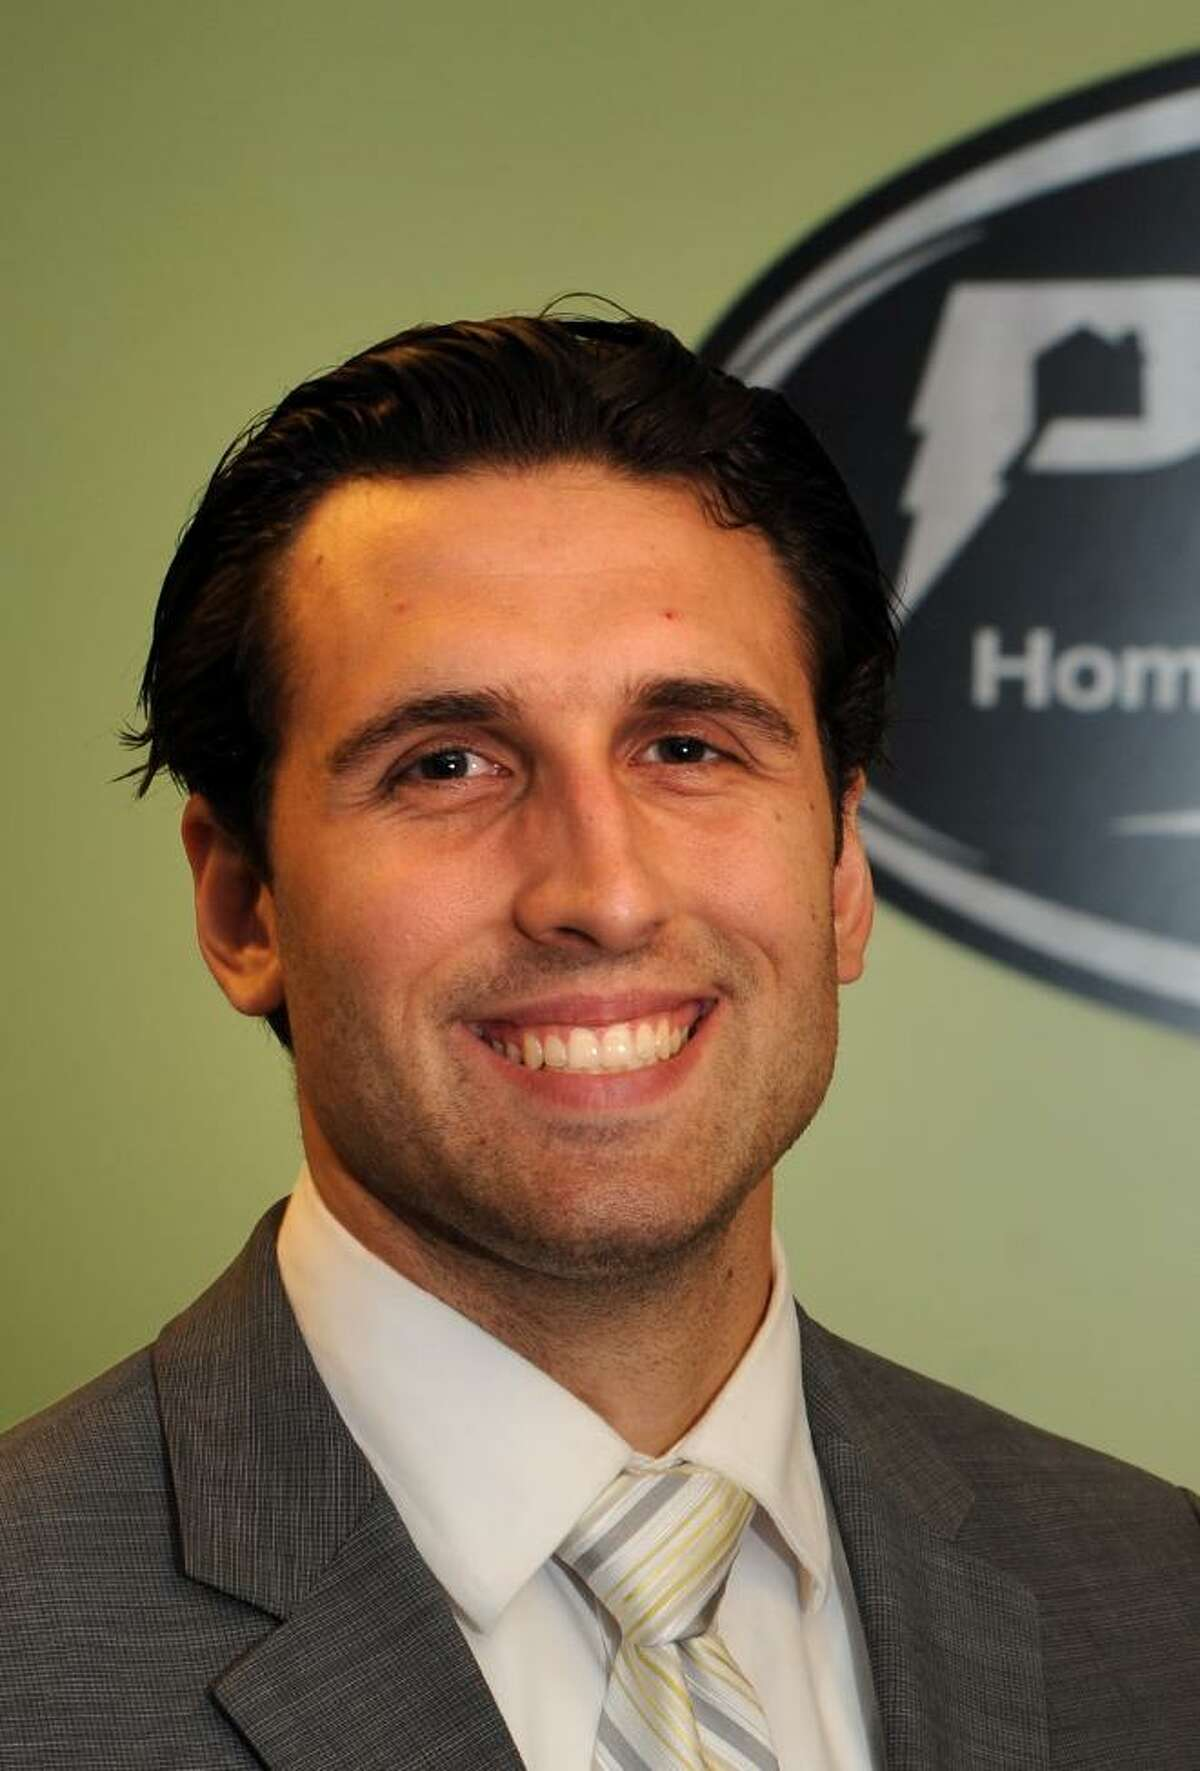 Tim Federowicz at Power Home Remodeling Group, in Stratford.